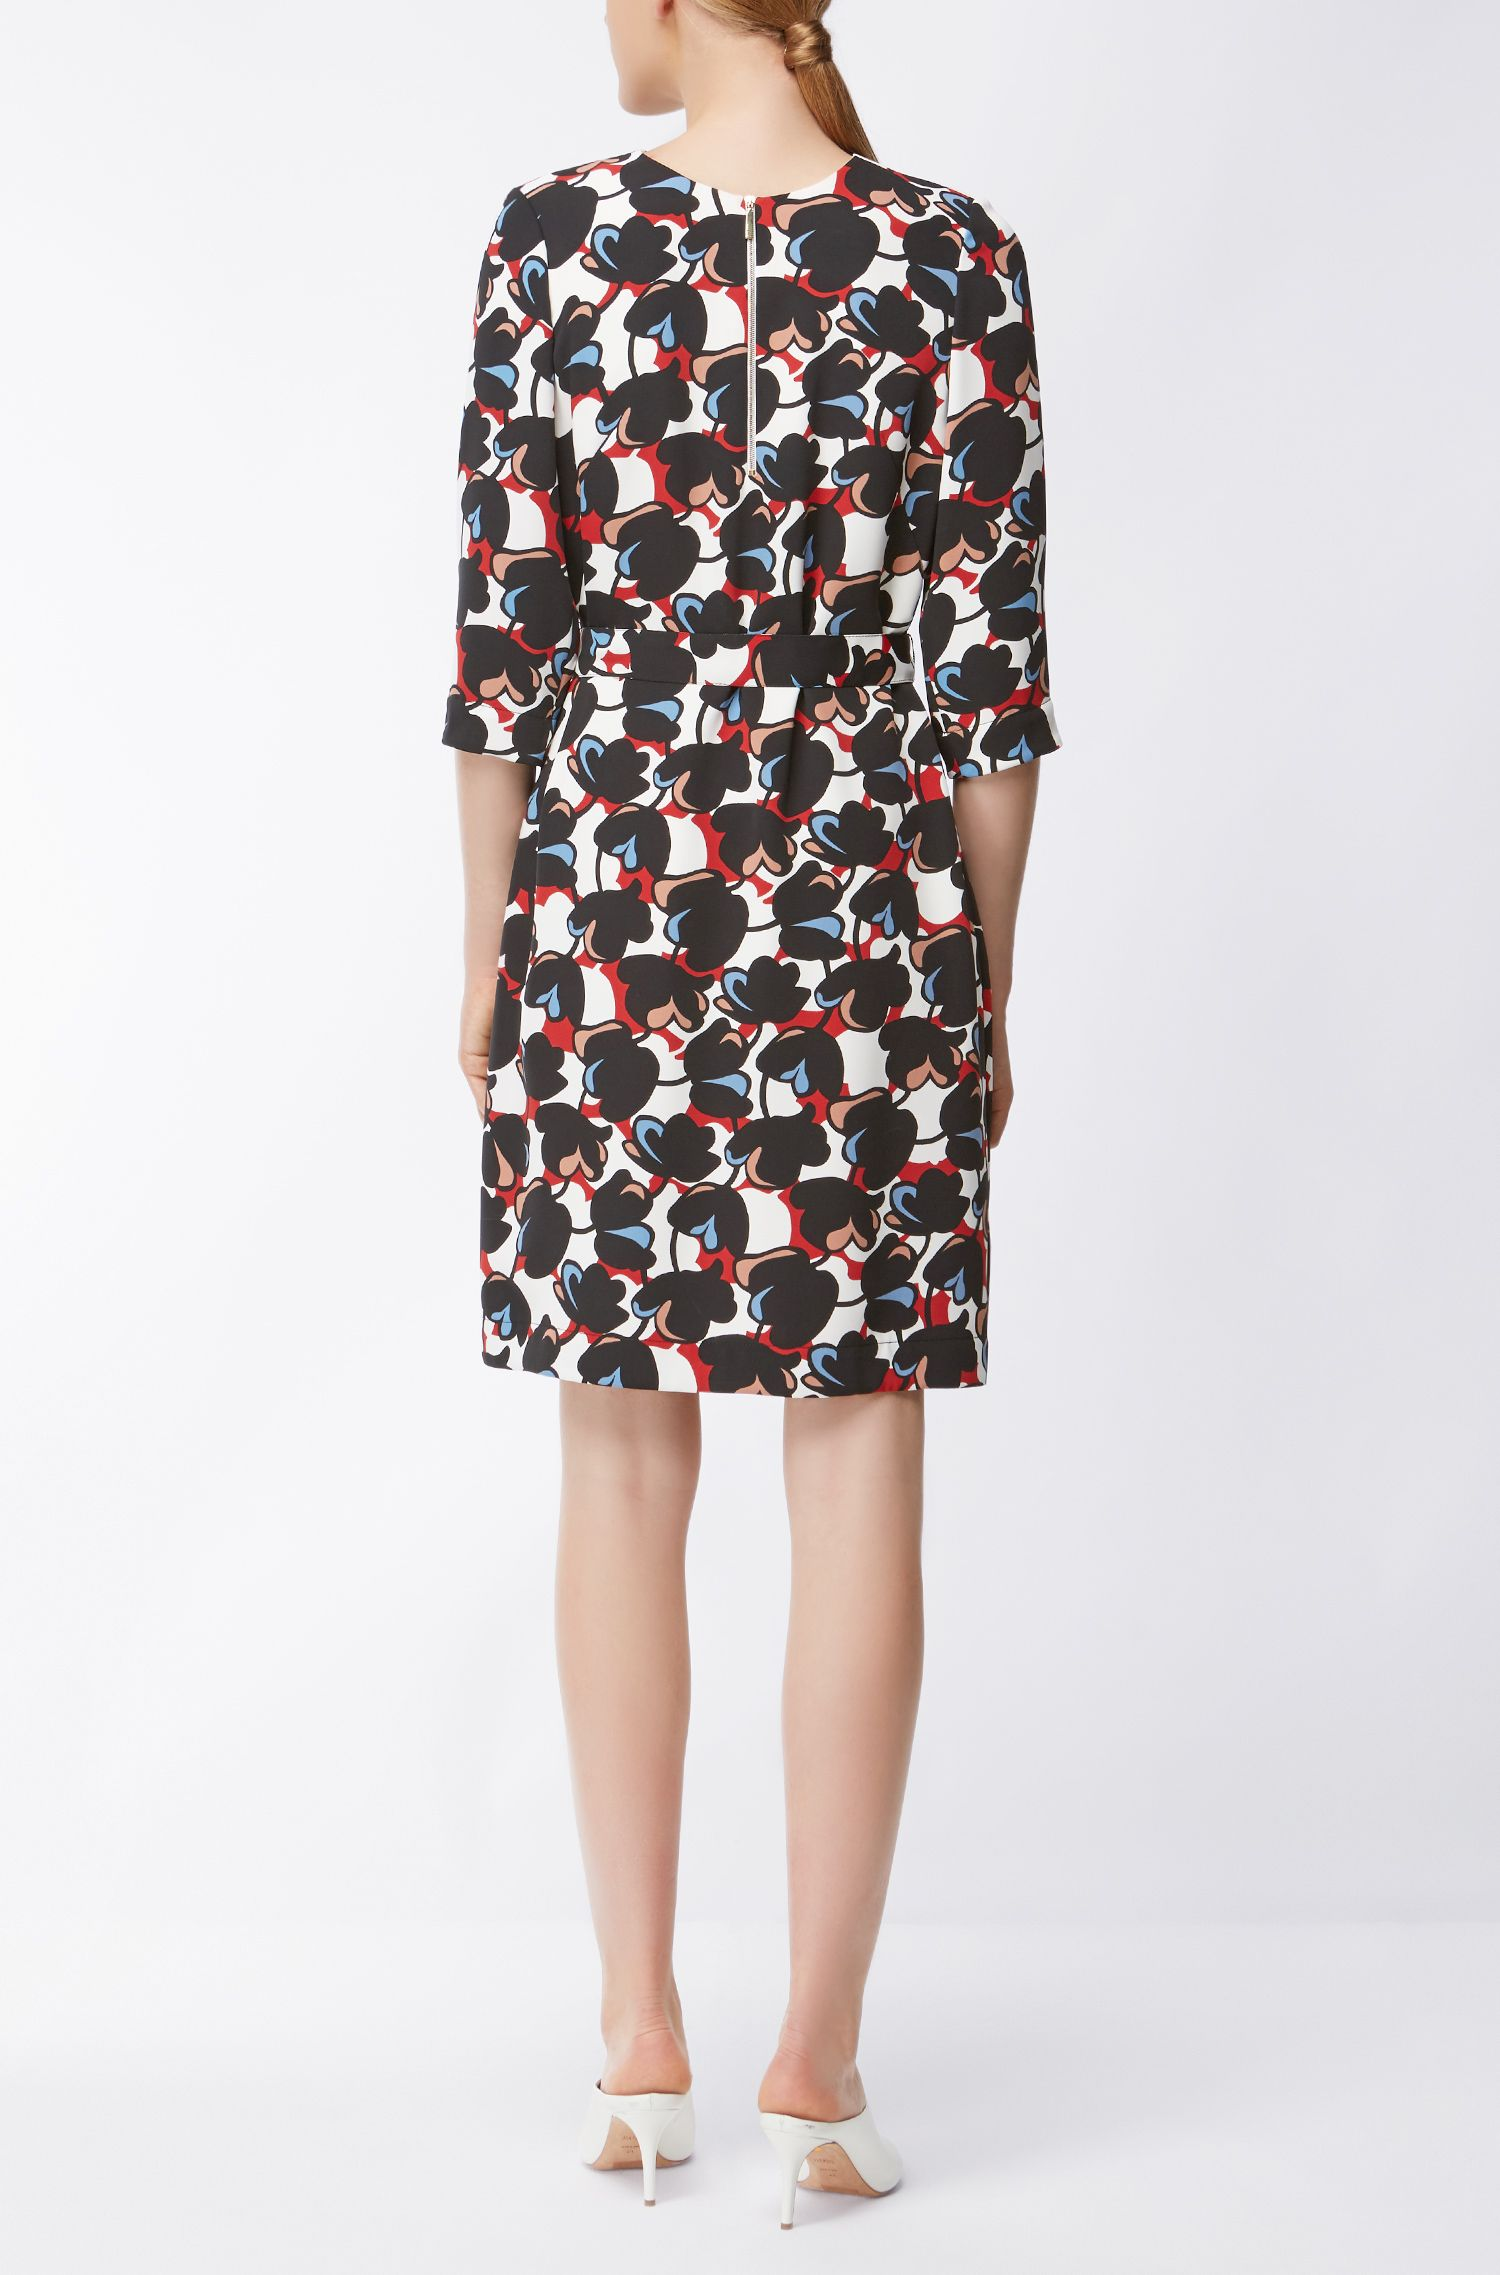 Hugo Boss Floral-Print Dress Dilamy 6 Patterned BOSS